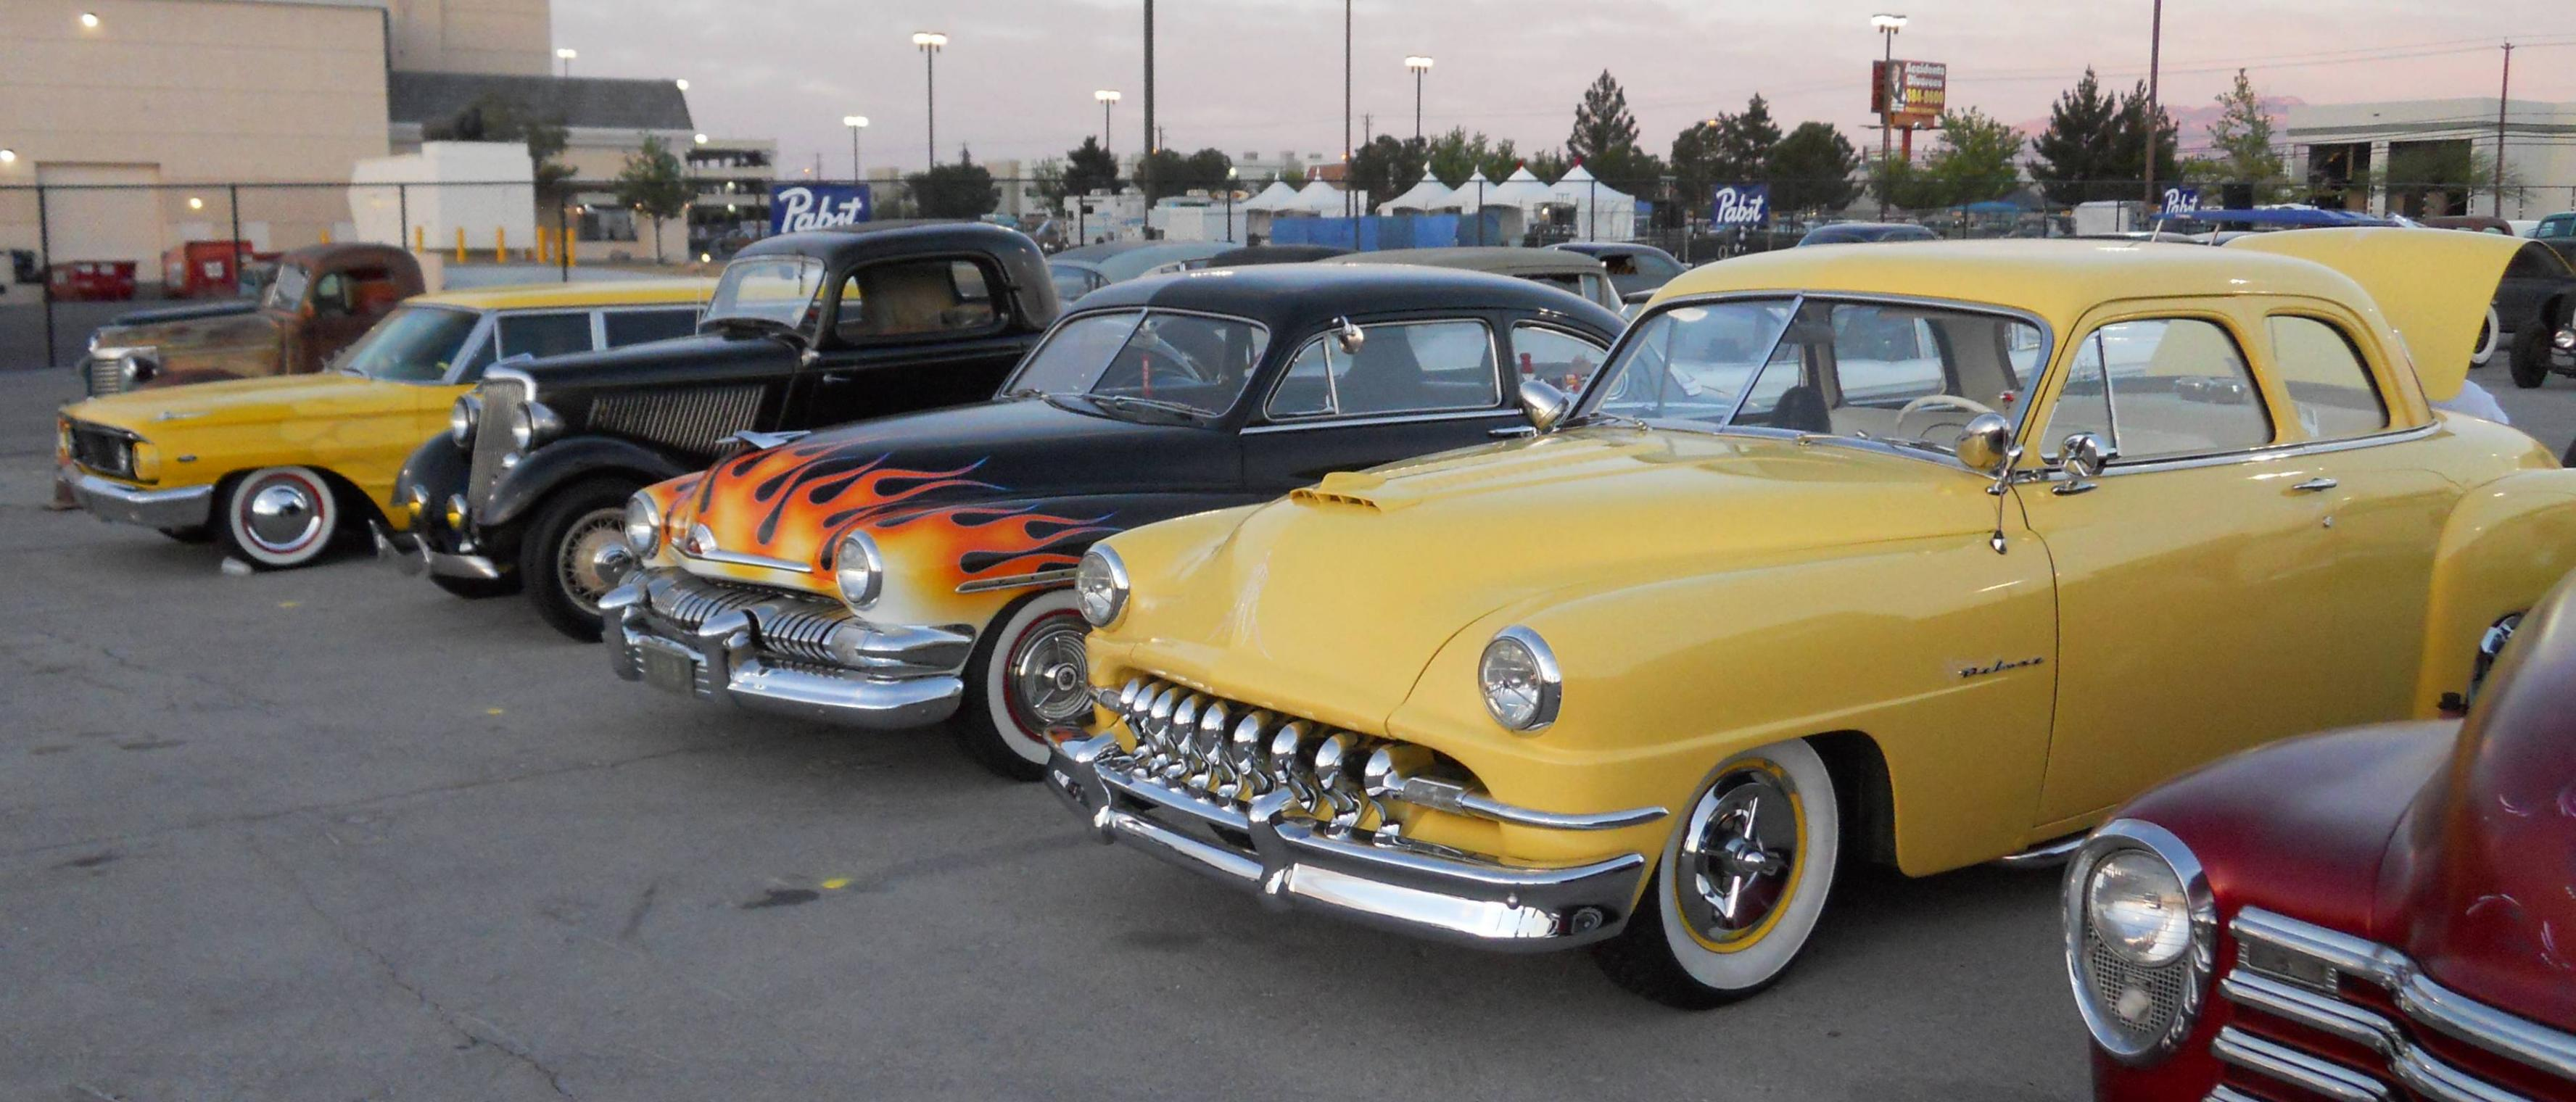 Viva Las Vegas Car Show - Car show in vegas today